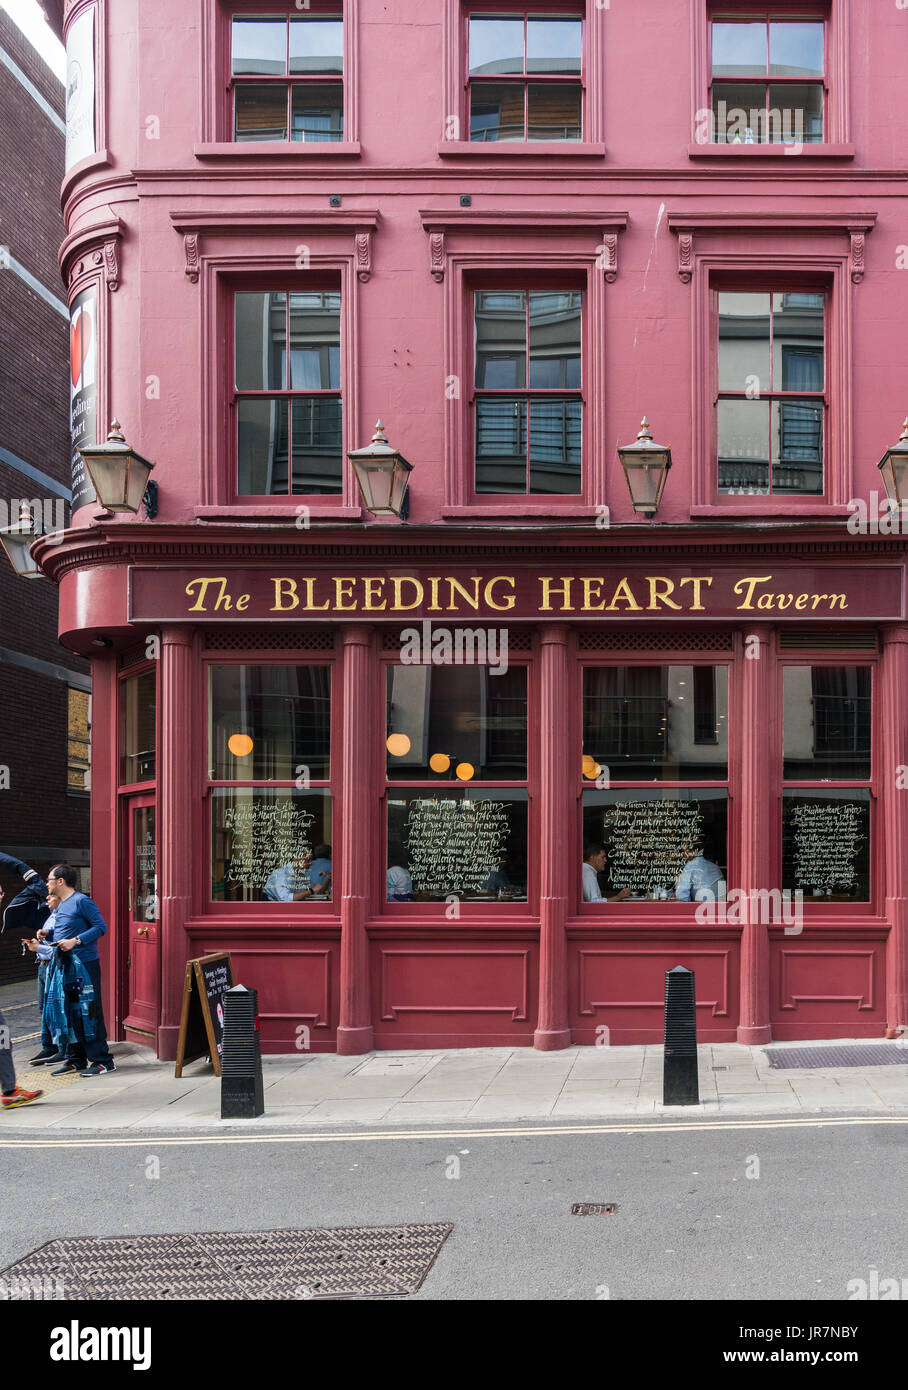 The Bleeding Heart Tavern, Greville Street, Farringdon, London Stock Photo